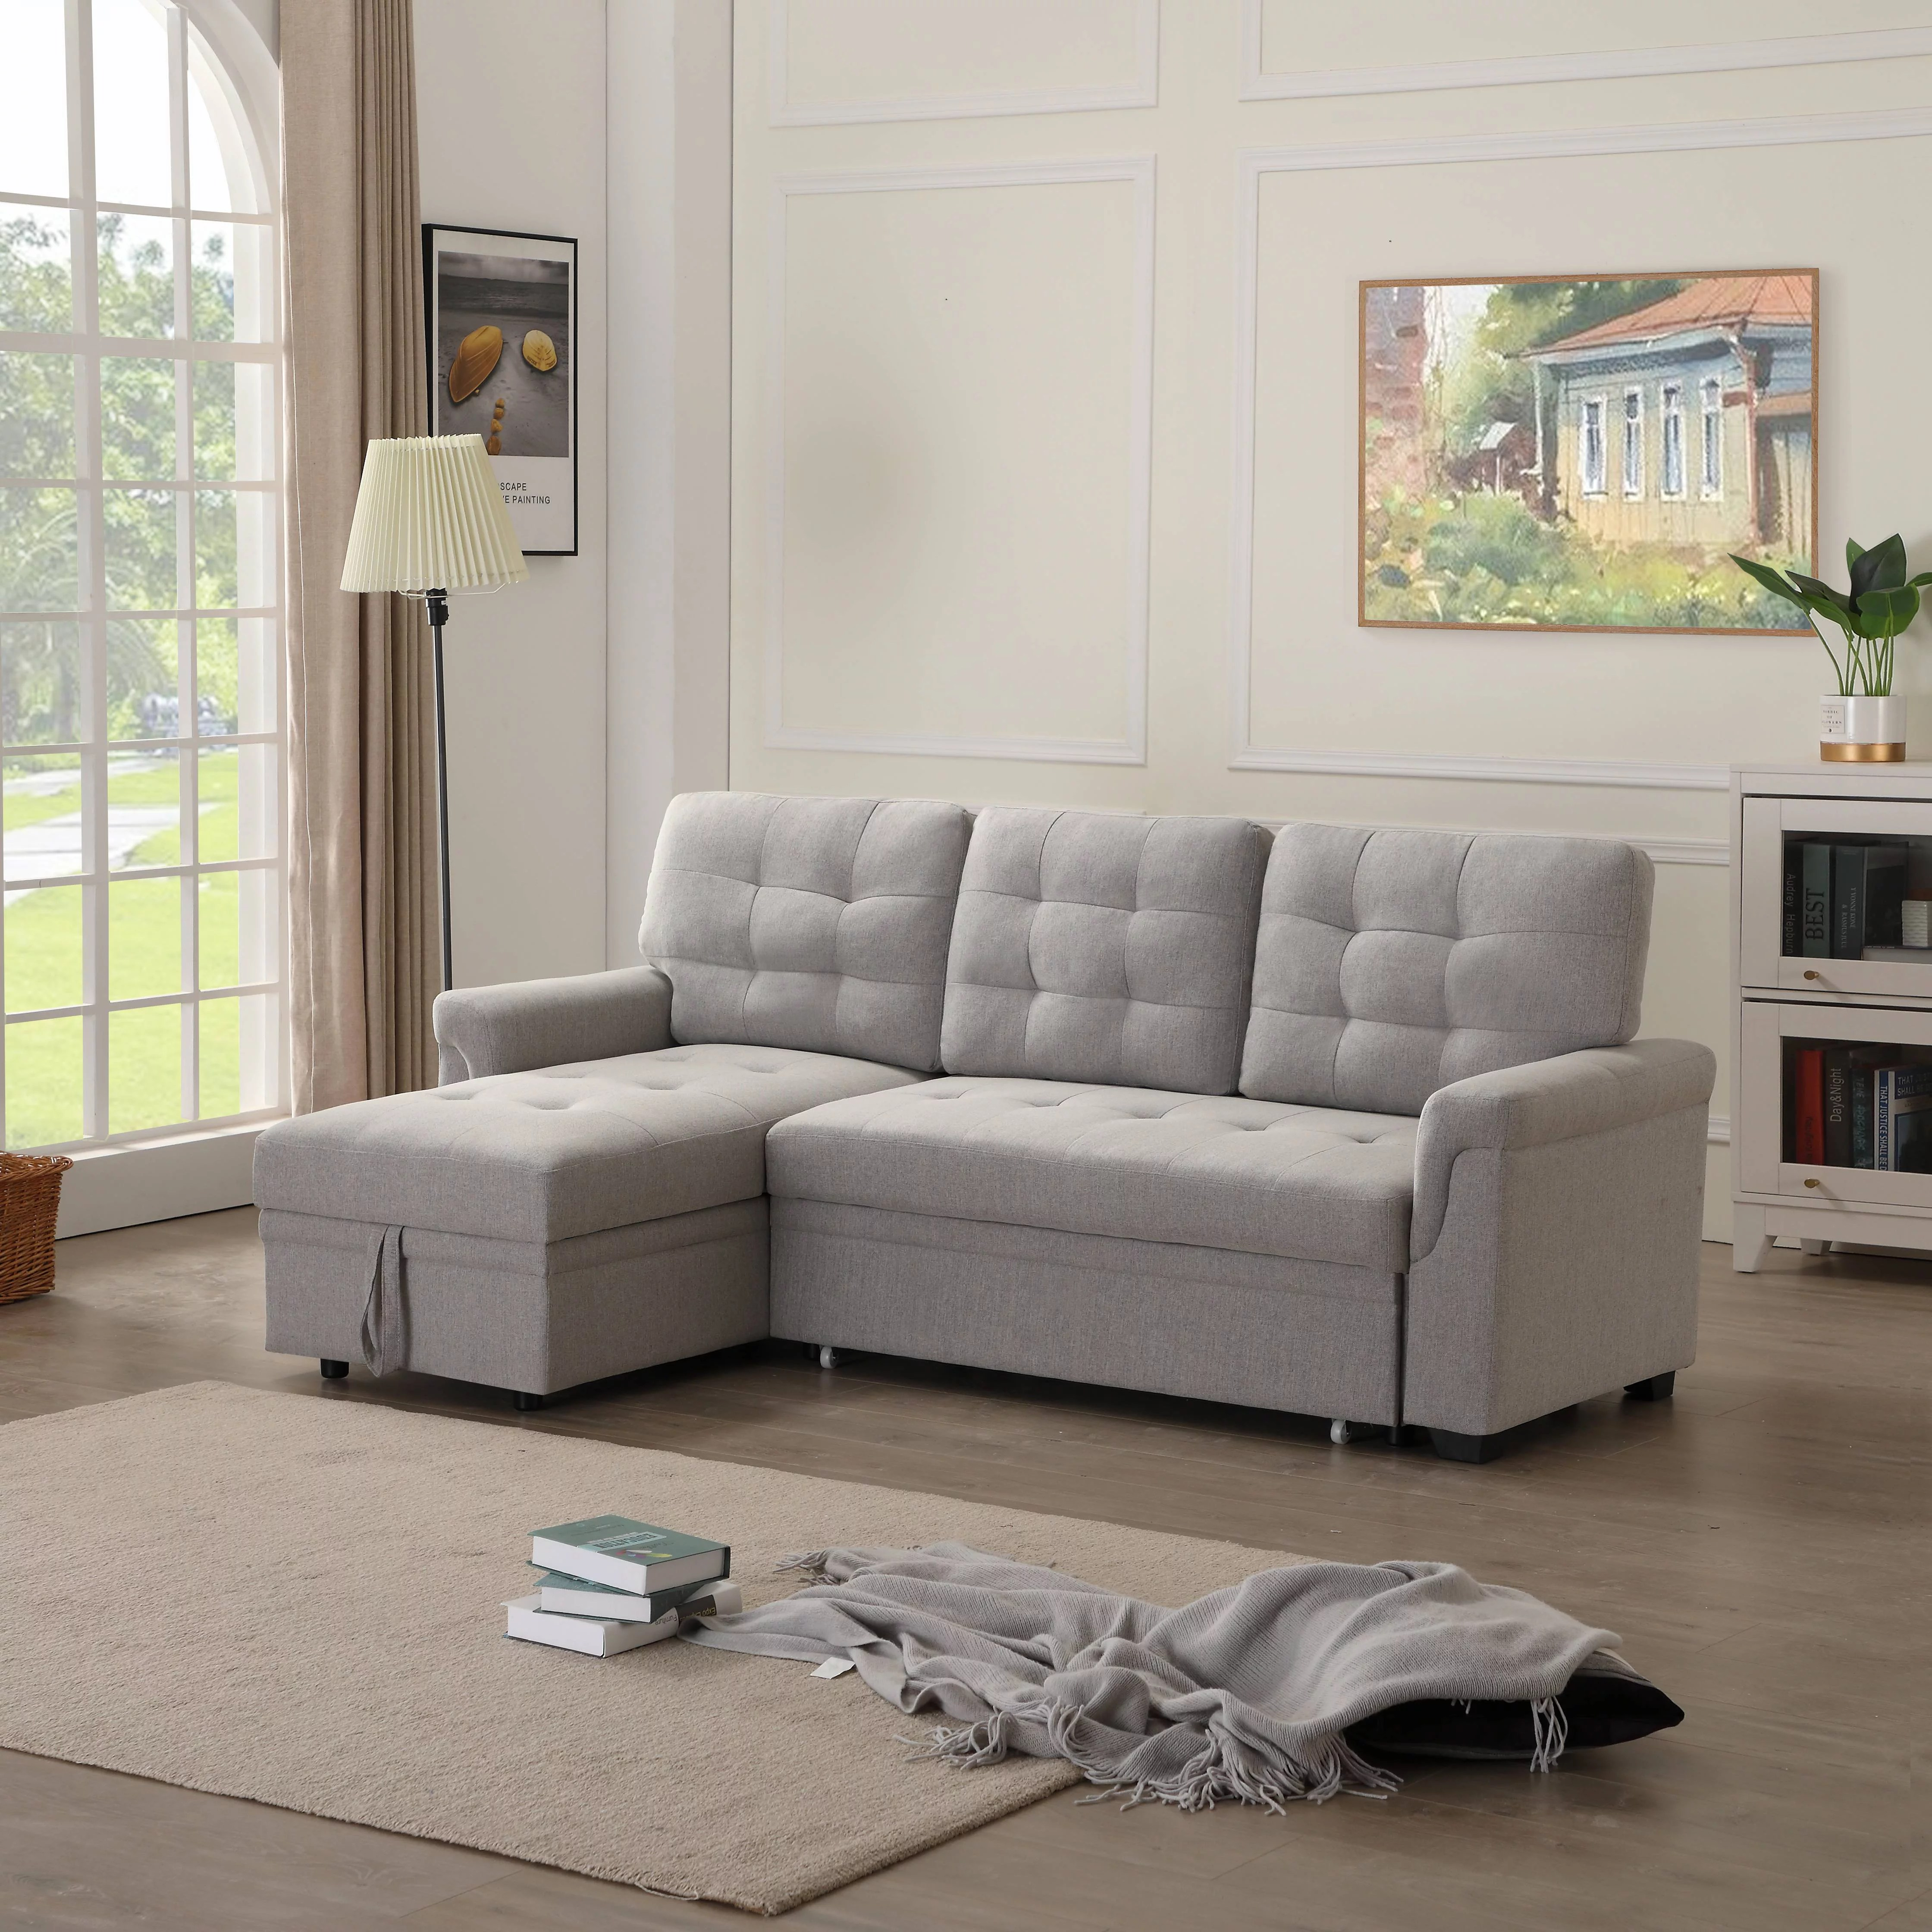 Sectional Sofa Bed With Reversible Chaise 86 W Modern L Shaped Sectional Sofa With Storage Segmart 3 Seat Functional Grey Linen Small Spaces Sectional Sofa Couch For Living Room Bedroom L5097 Walmart Com